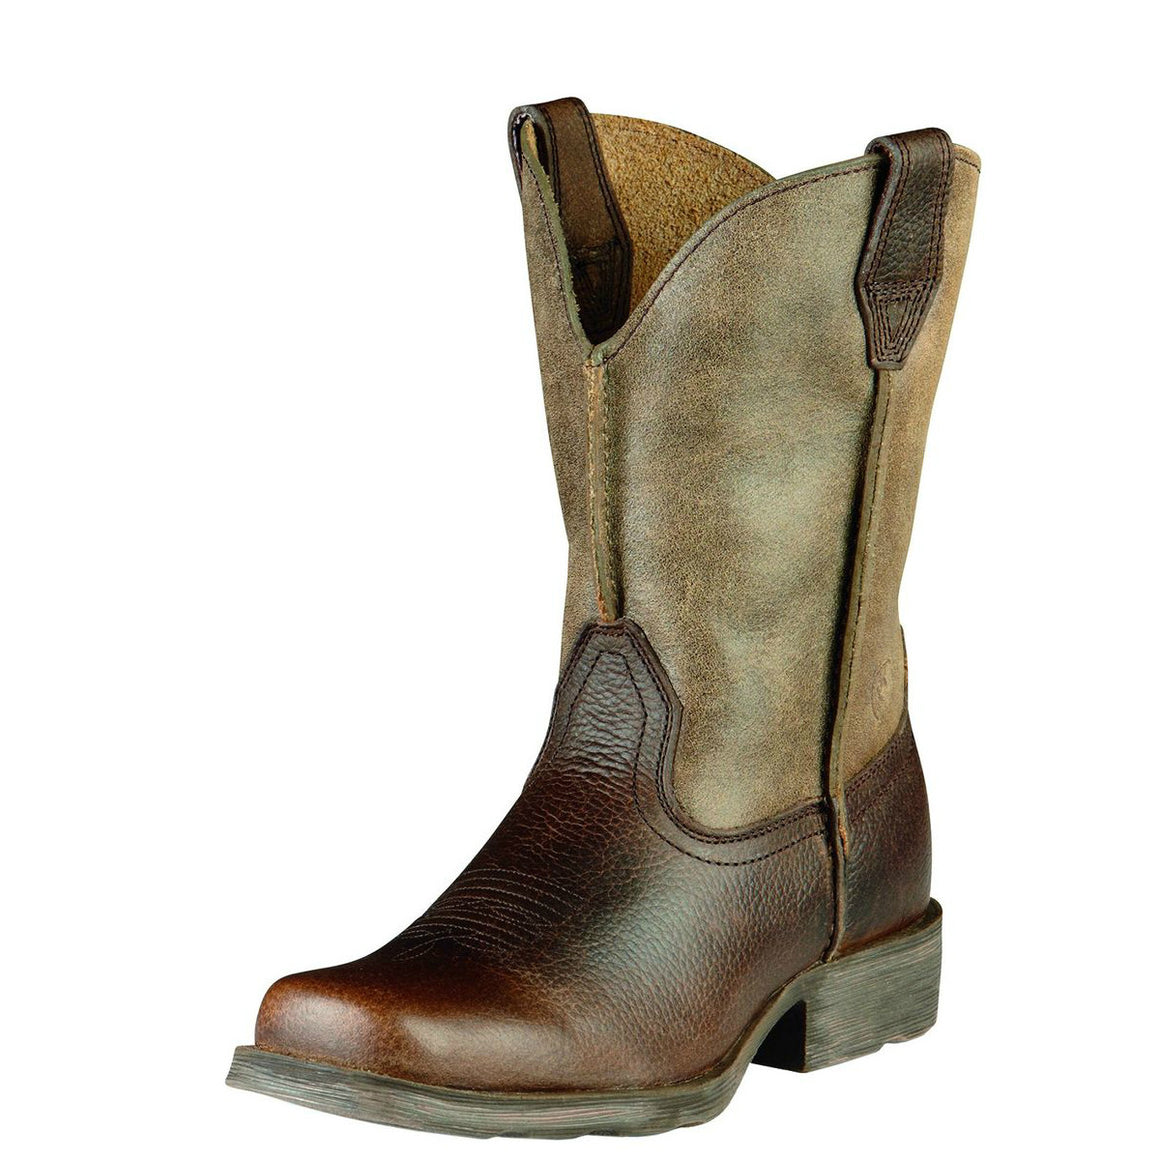 Ariat Kid's Rambler - Earth/Brown 10007602